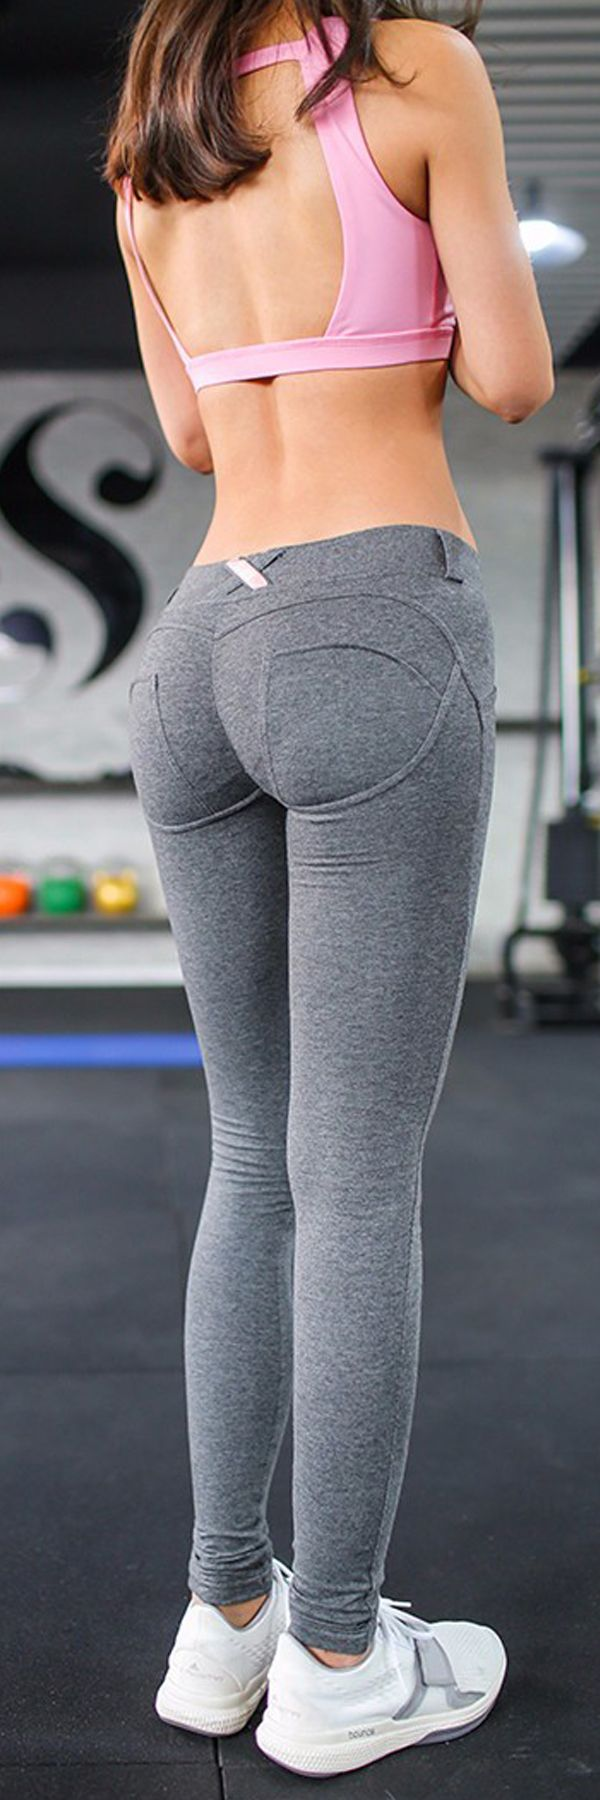 I'm crazy about these butt-lifting leggings! They are really perfect for exercising or just some flirty fun! They are made from a high quality compression blend material which lifts your hips and butt to give you that celebrity look you have wanted! Get a